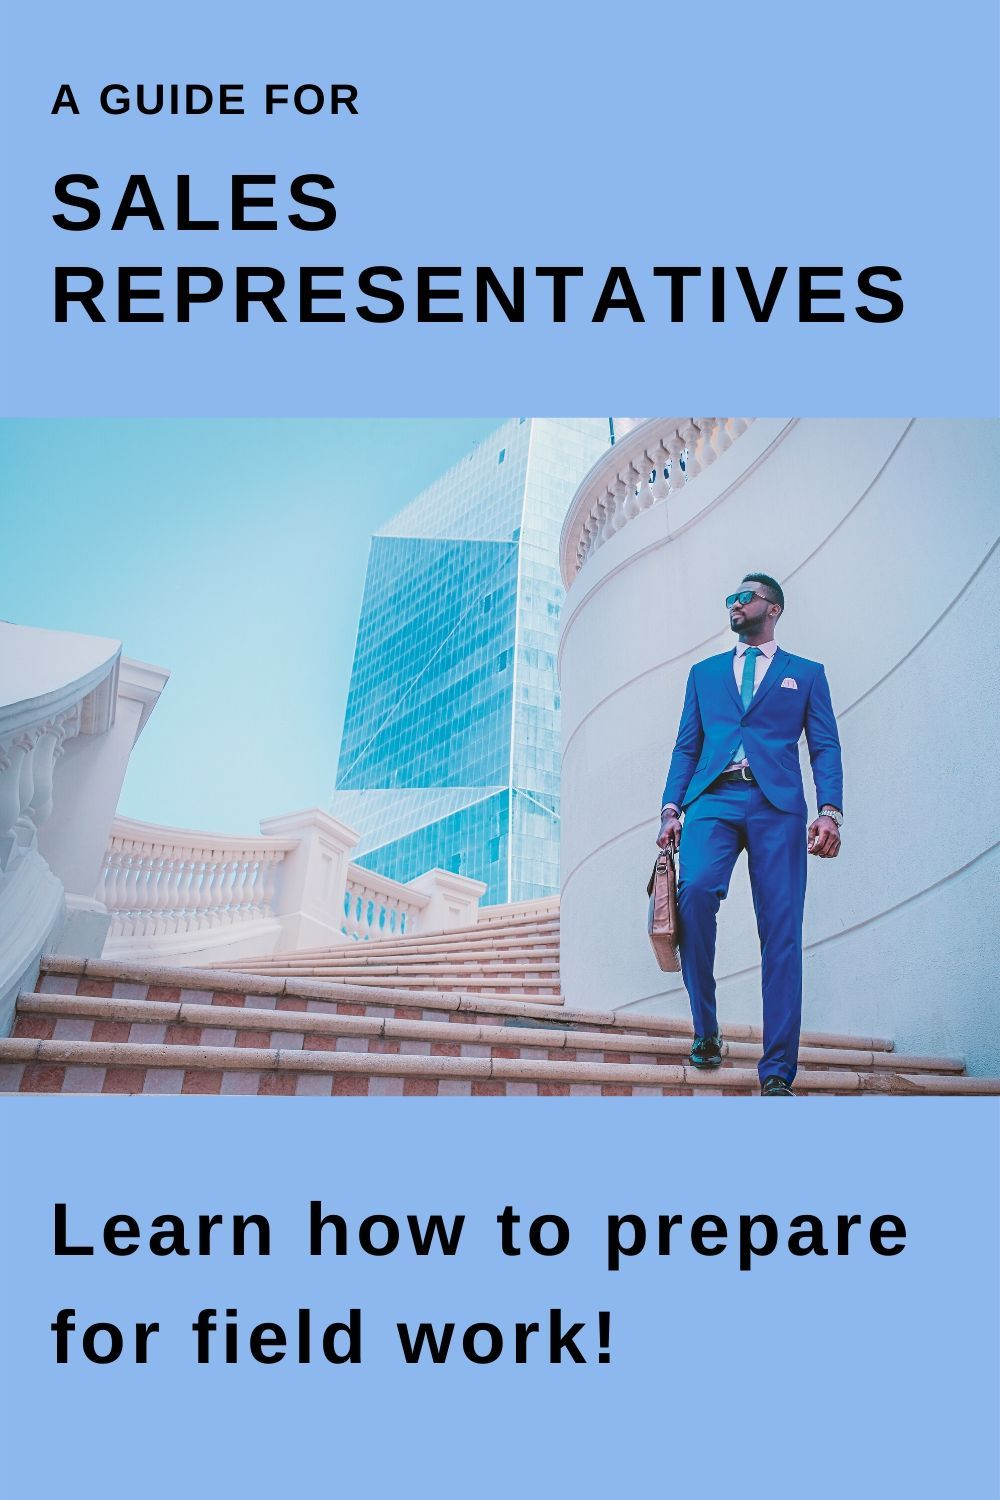 A Guide For Sales Representatives Learn How To Prepare For Field Work In 2020 Learning Business Skills Starting Your Own Business